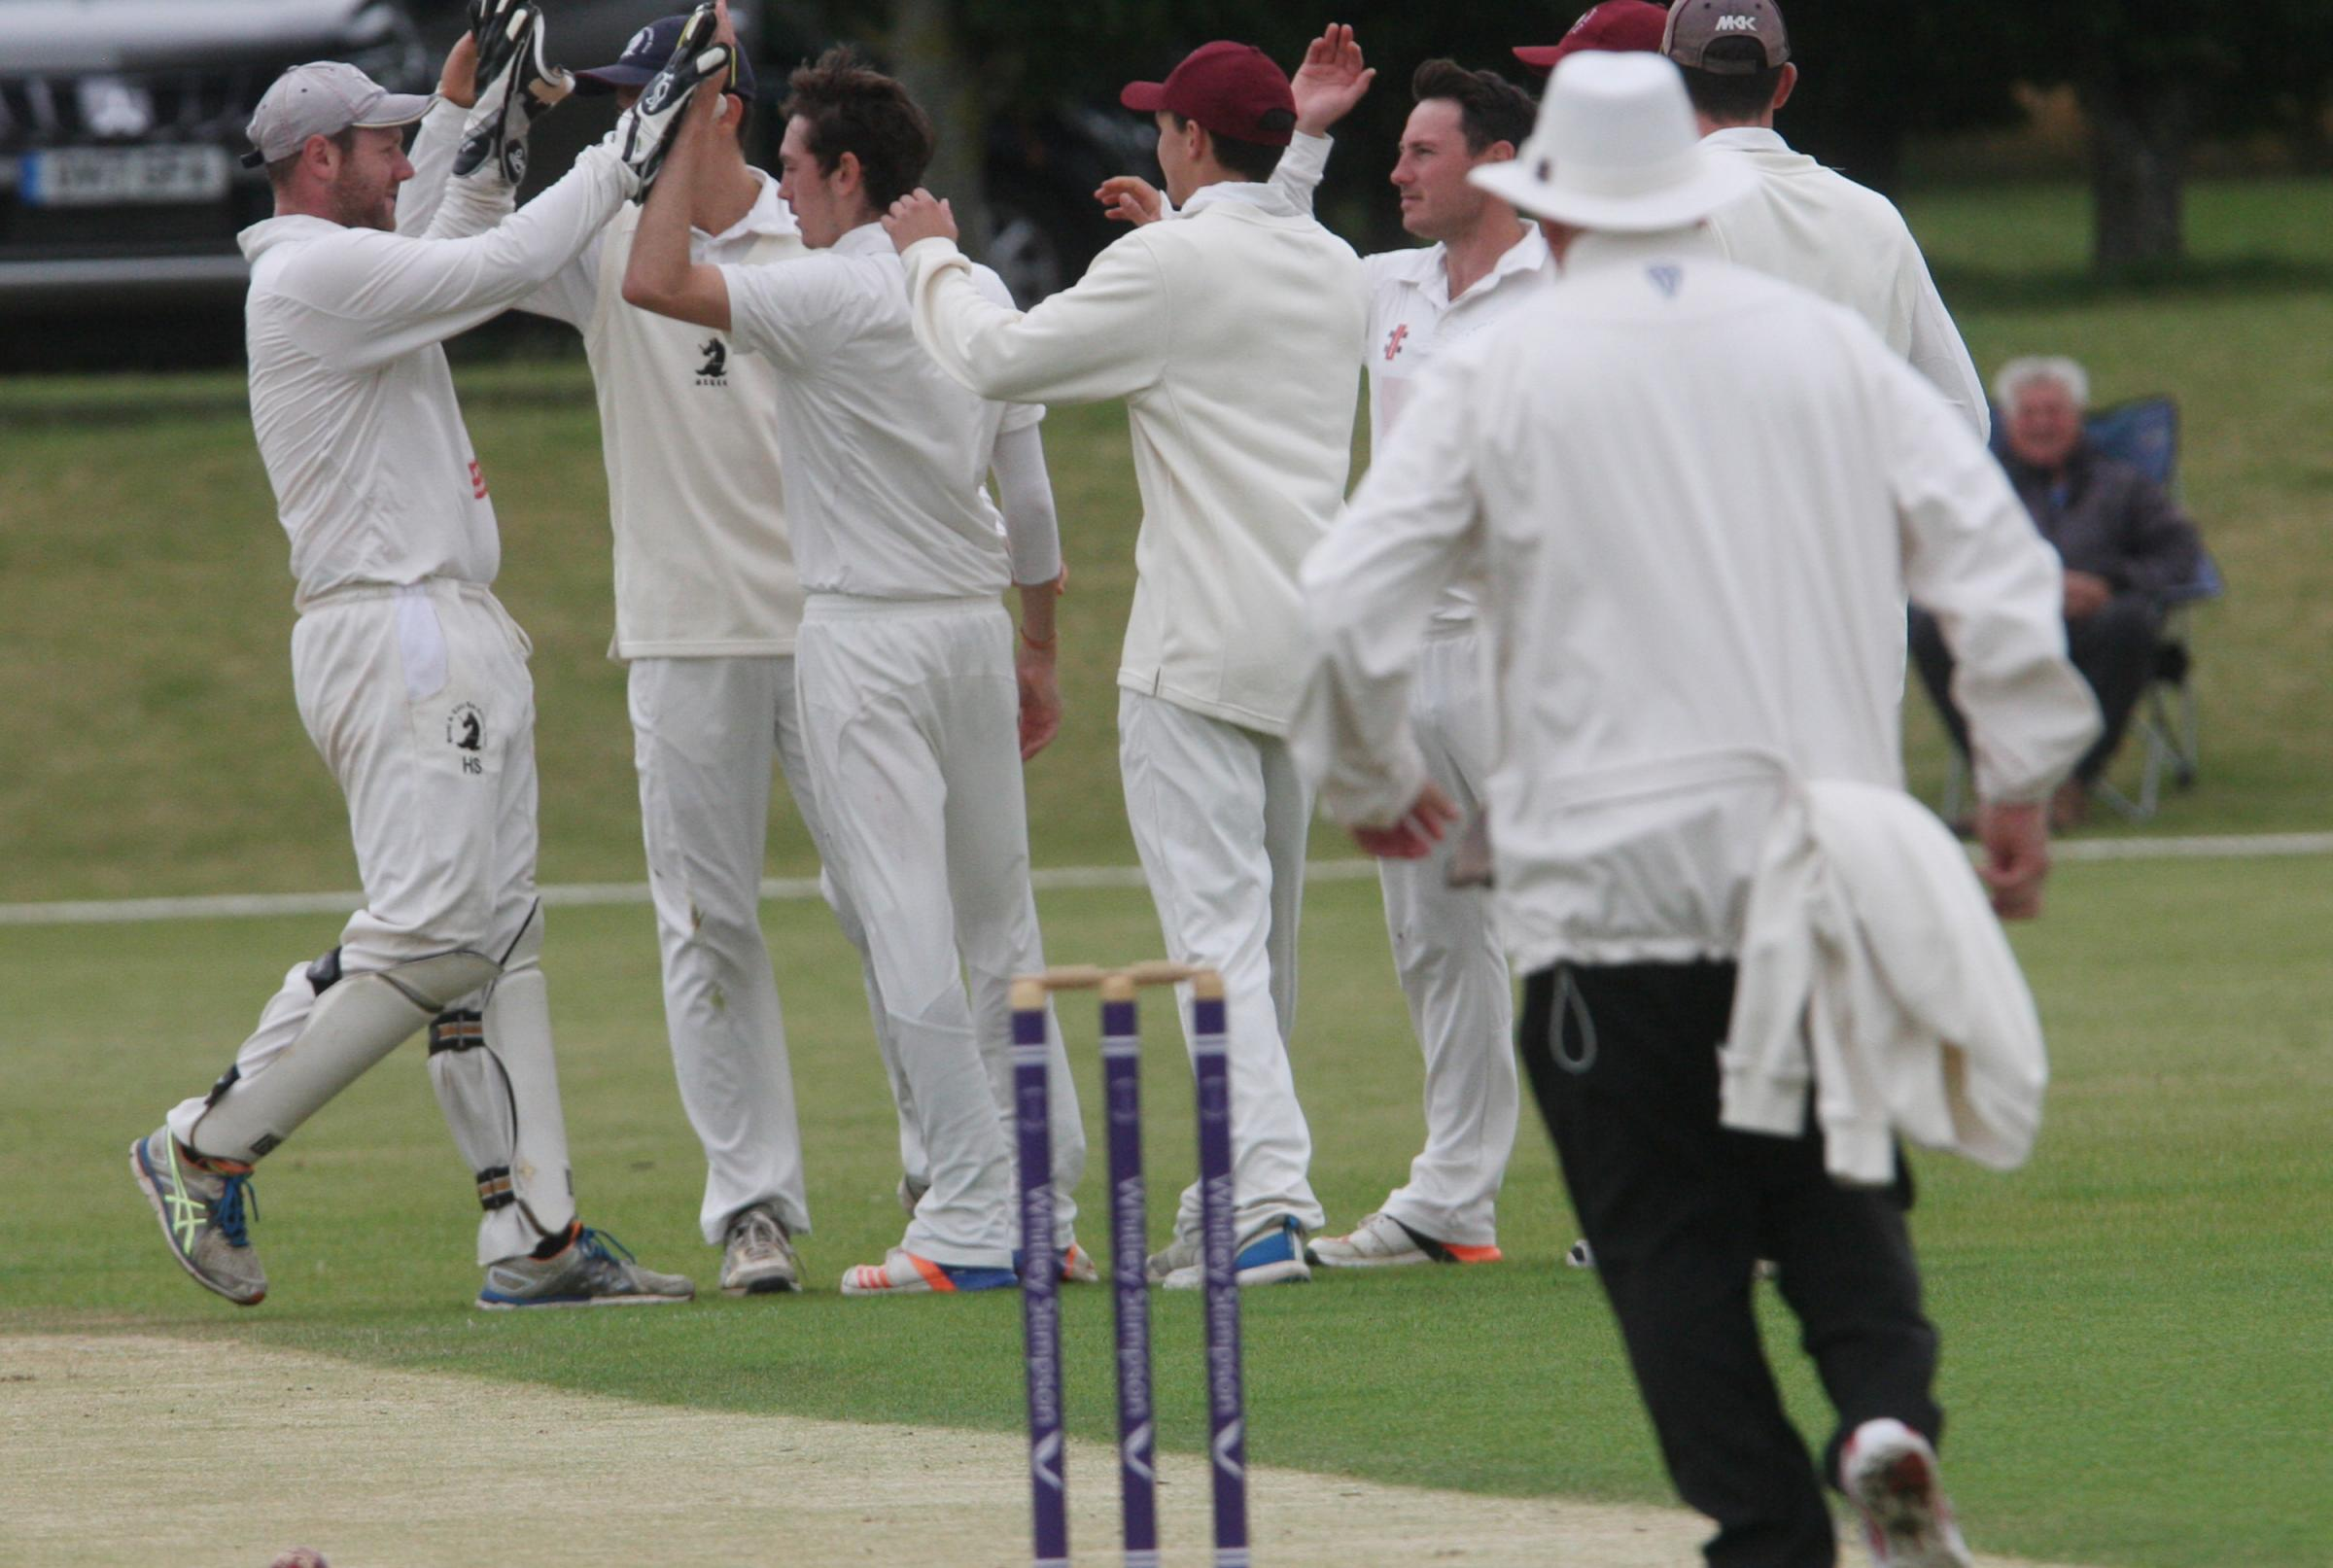 SUPER START: Great & Little Tew players celebrate after Lawrence Brock dismissed Banbury opener Ollie Clarke for a duck                                                                                                                              Pictures: